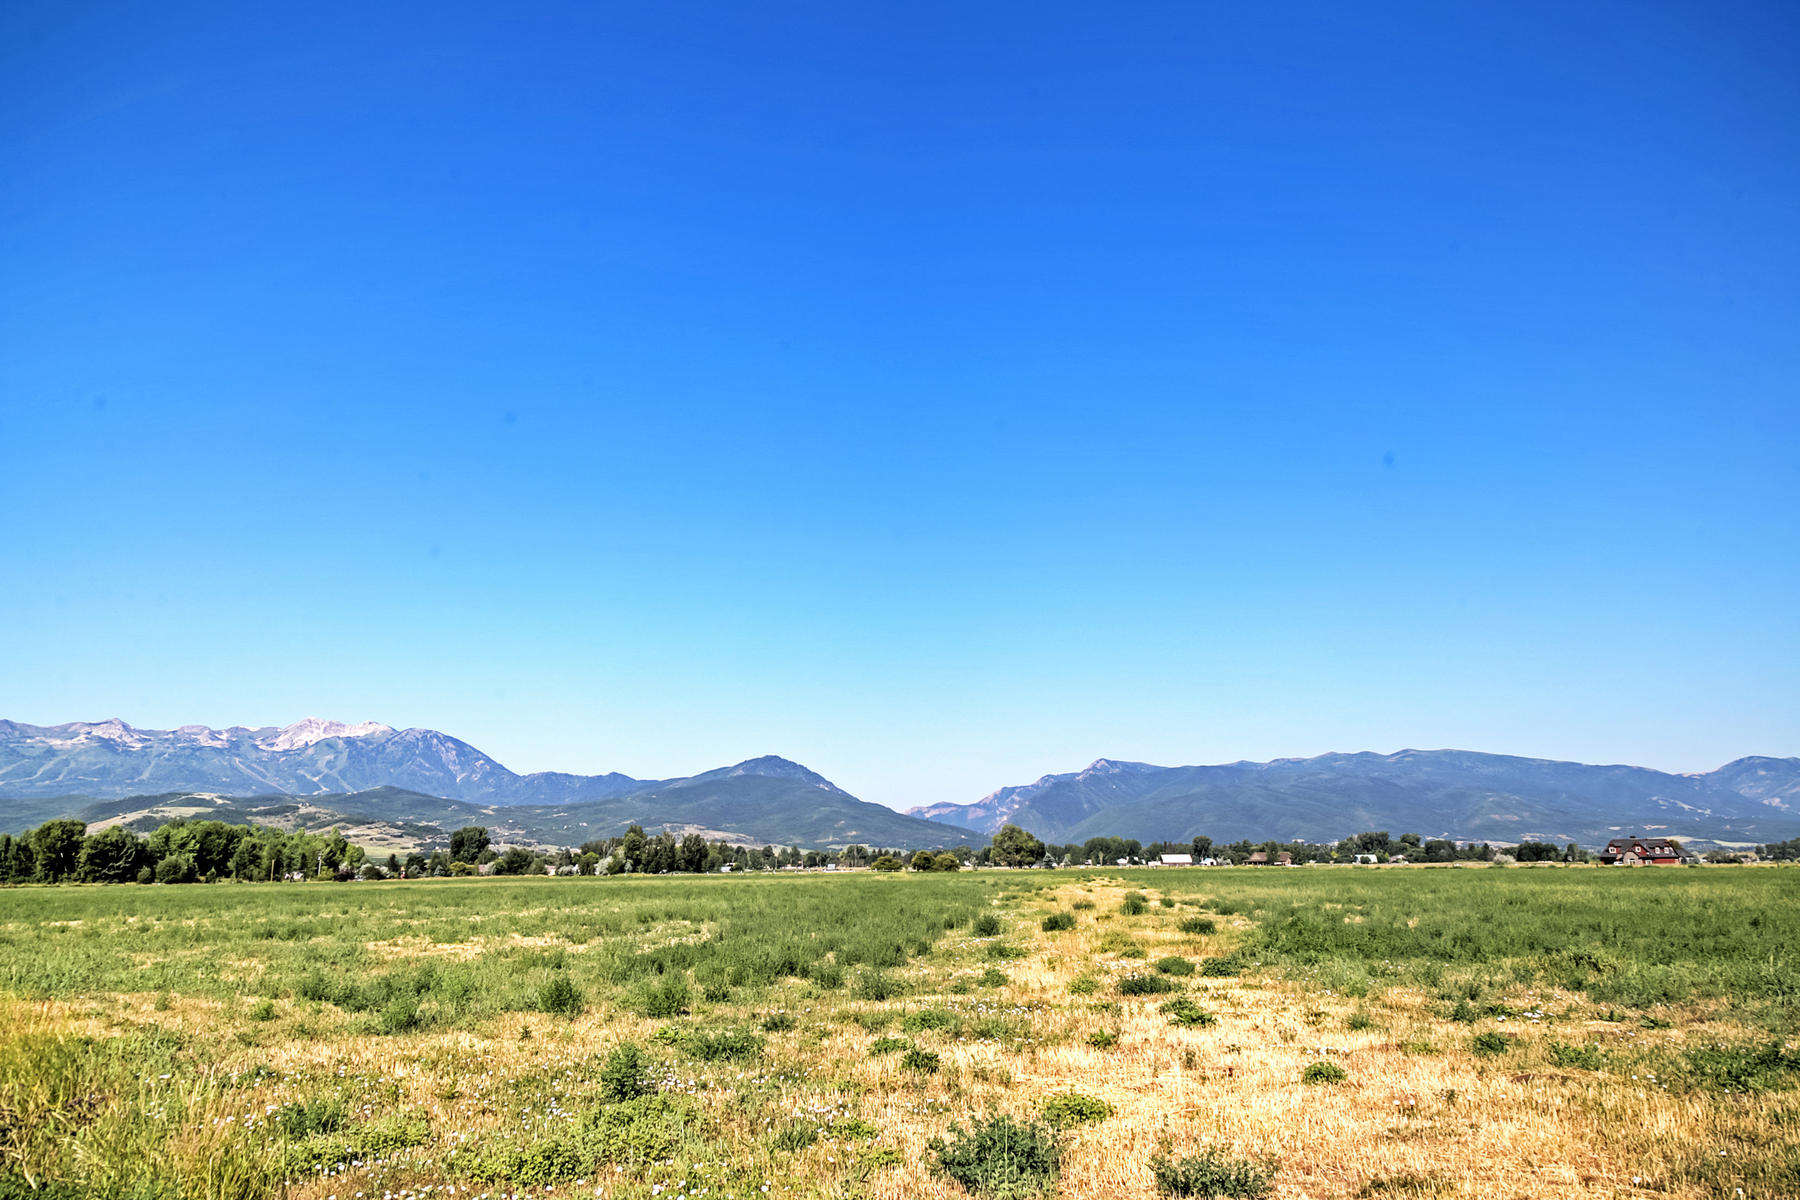 Additional photo for property listing at 21 Prime Acres Potentially 6 Building Lots 403 South 8600 East Huntsville, Utah 84317 United States